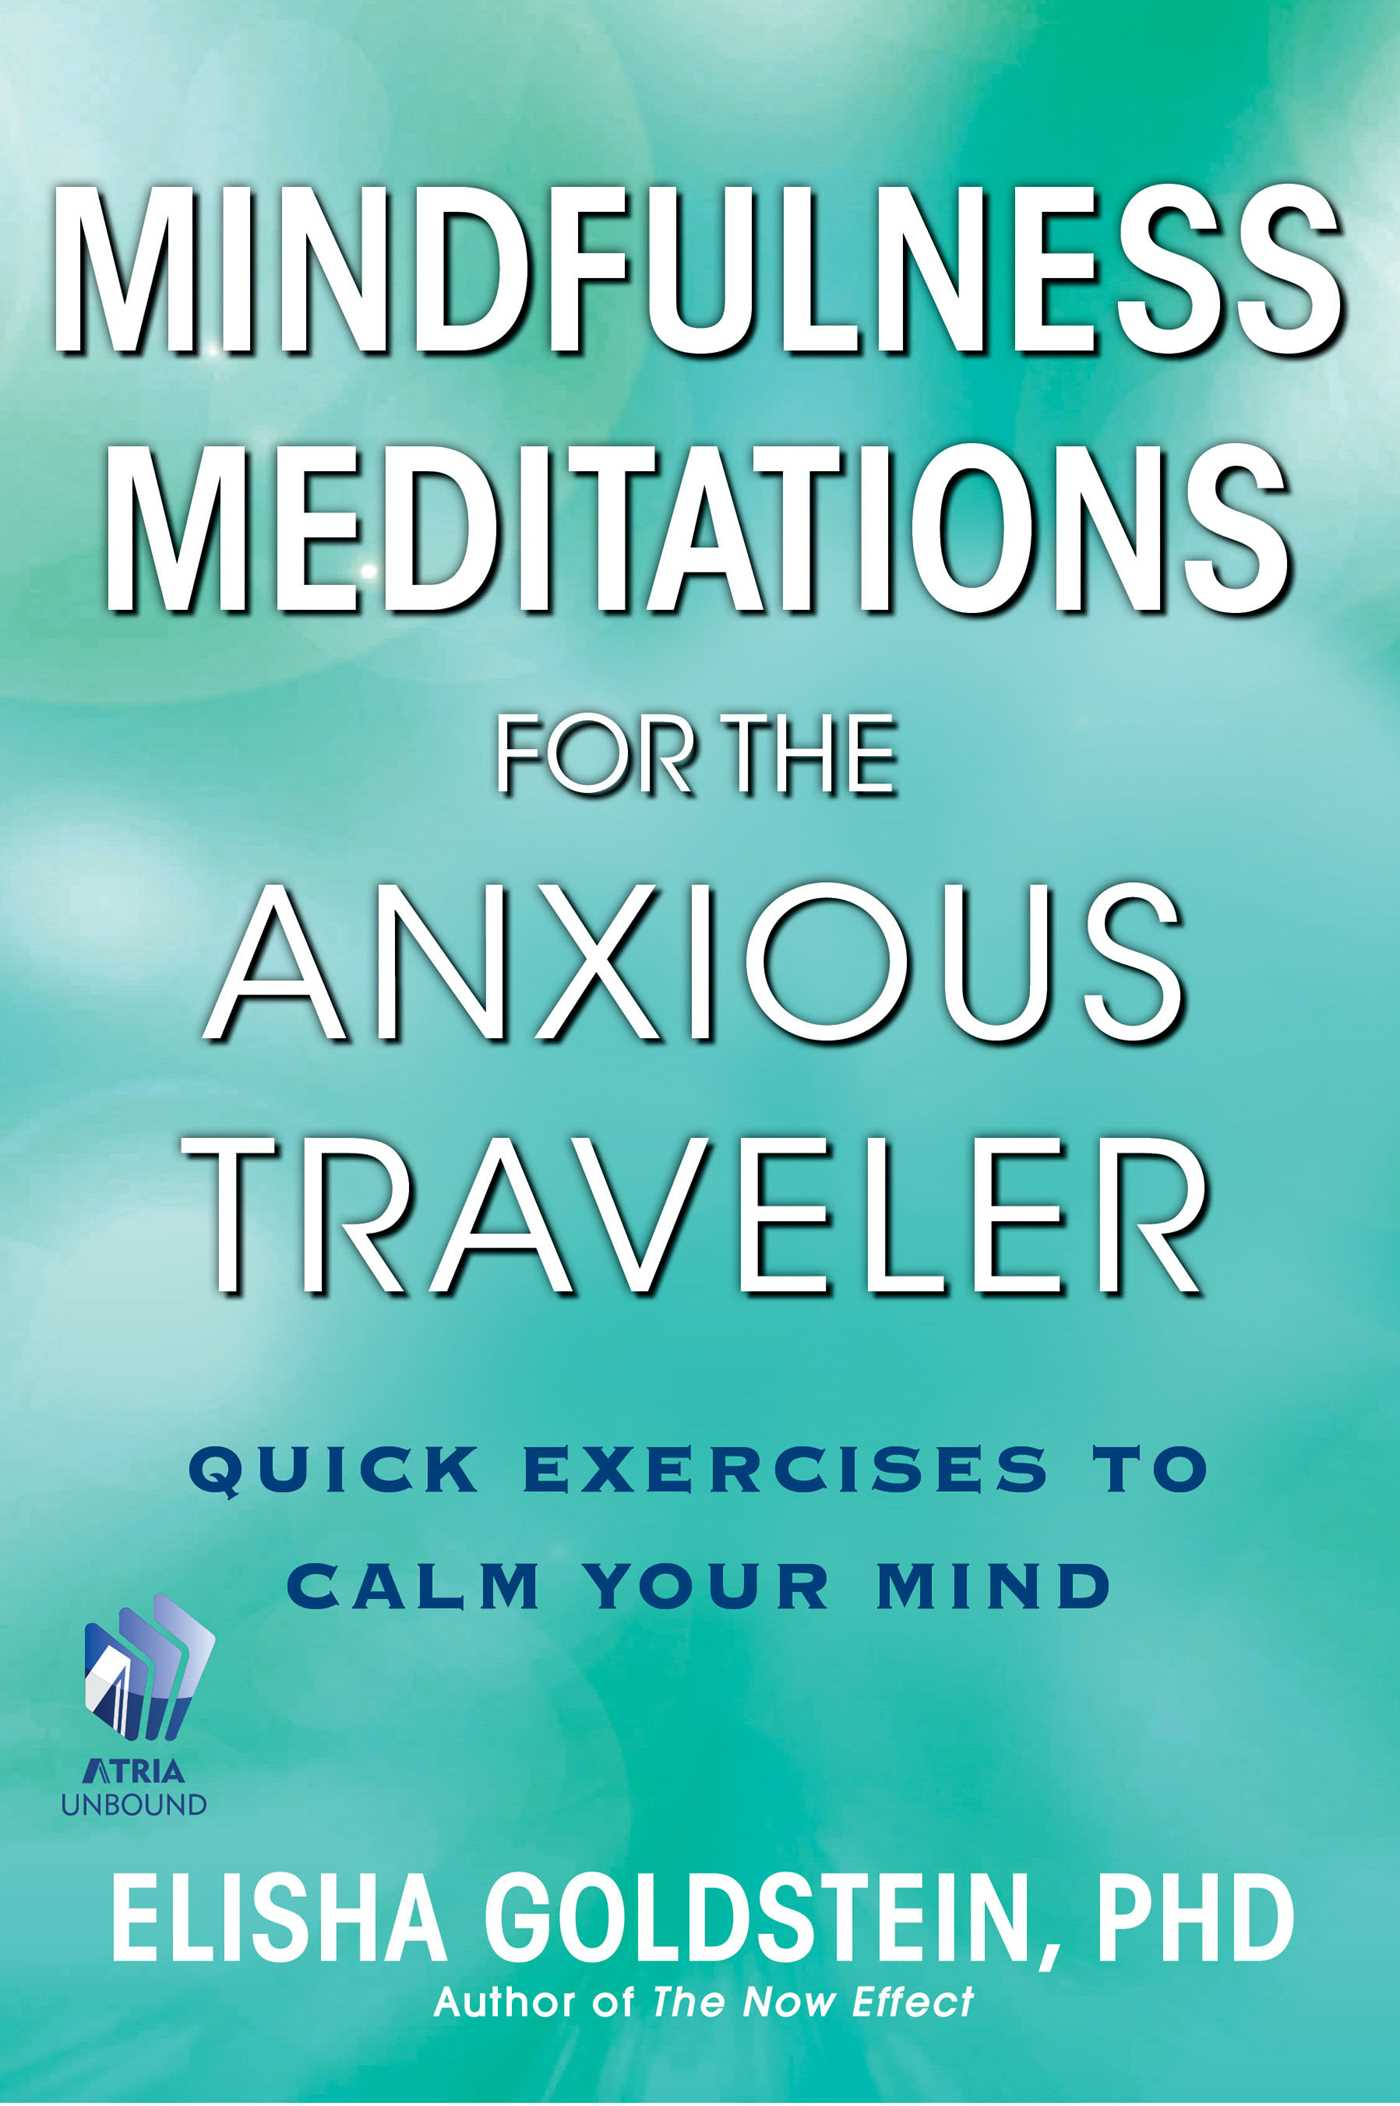 Mindfulness meditations for the anxious traveler 9781451684315 hr